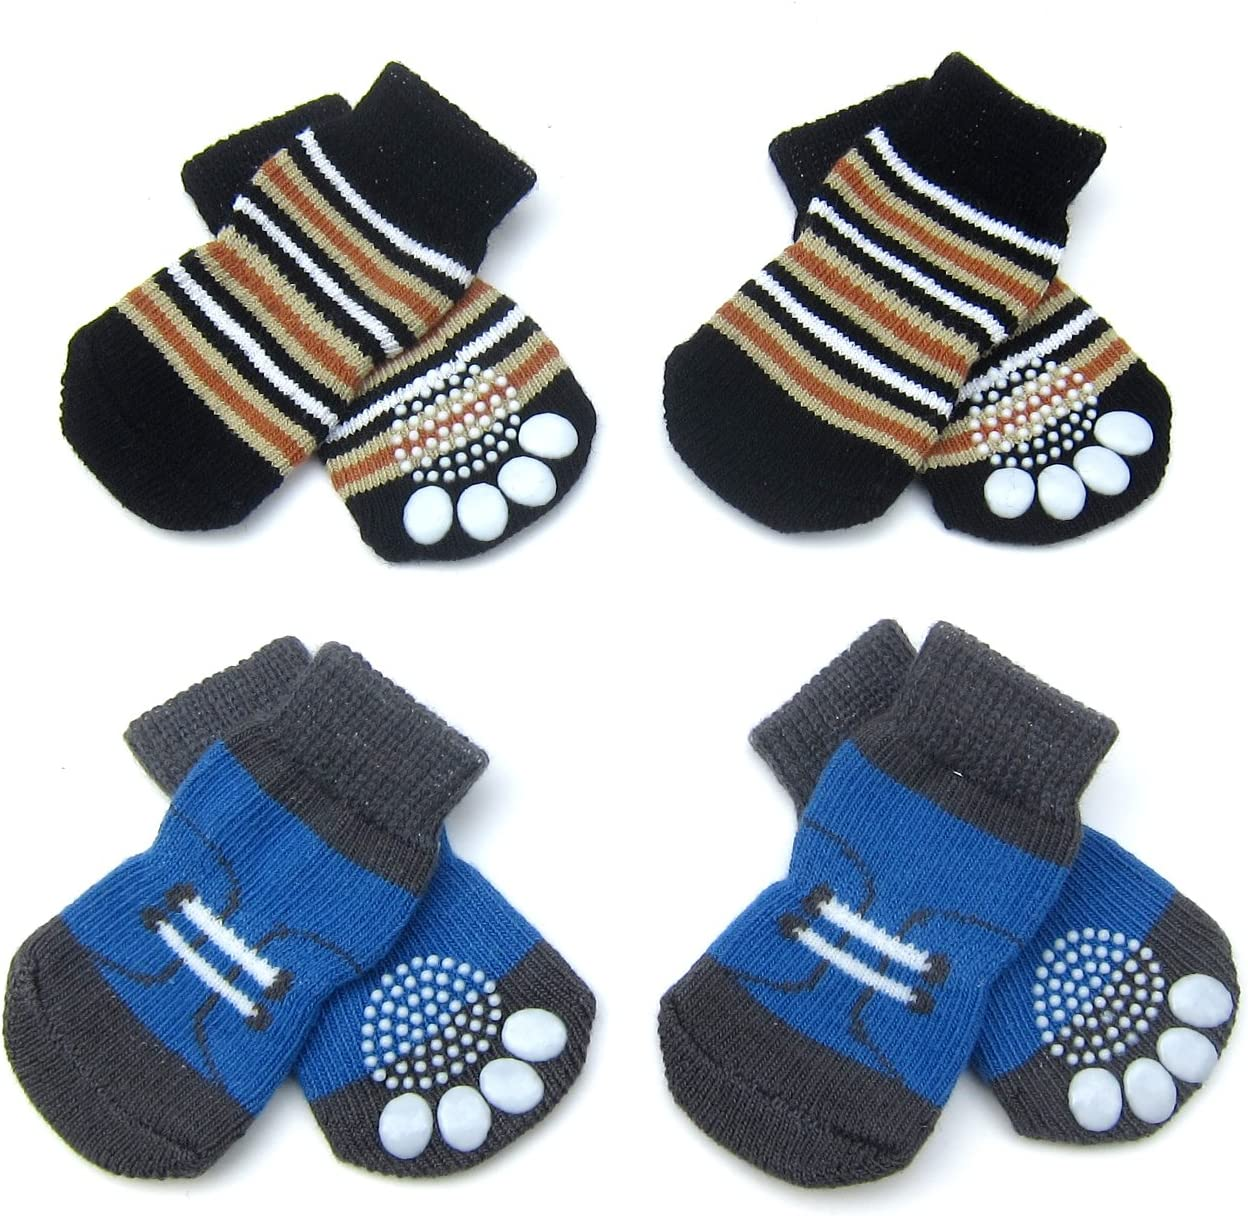 Alfie Pet - Gari 2 Set of Indoor Sale Special Price Socks New mail order 4 Dog Protection Paw